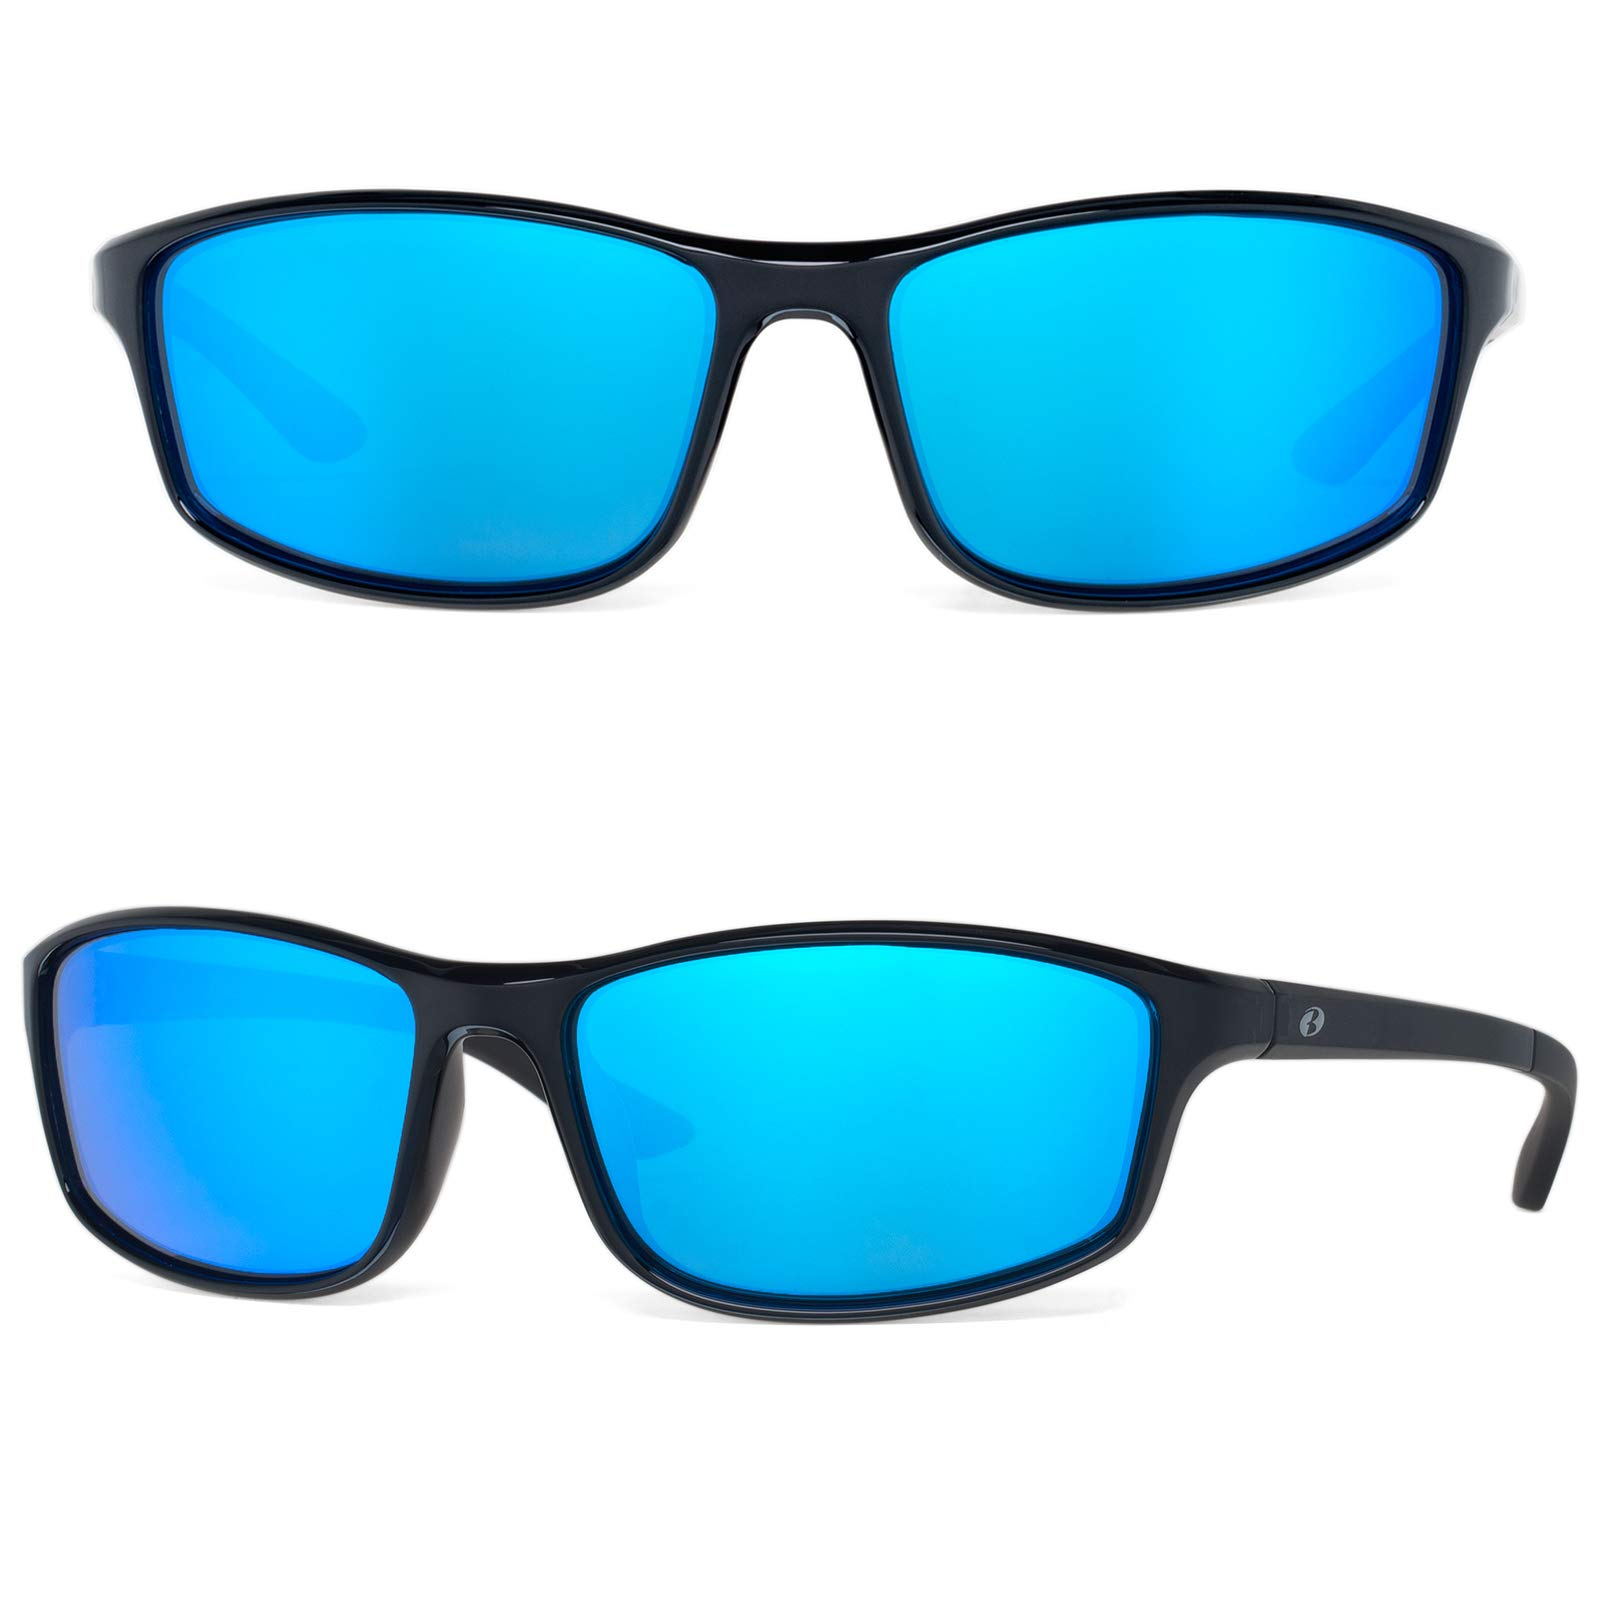 Bnus Paladin italy made corning glass lens blue mirrored polarized sunglasses for men Running Driving Fishing Golf shades (Black/Blue Mirrored, Never Scratch Mirror Coating Polarized Lens)